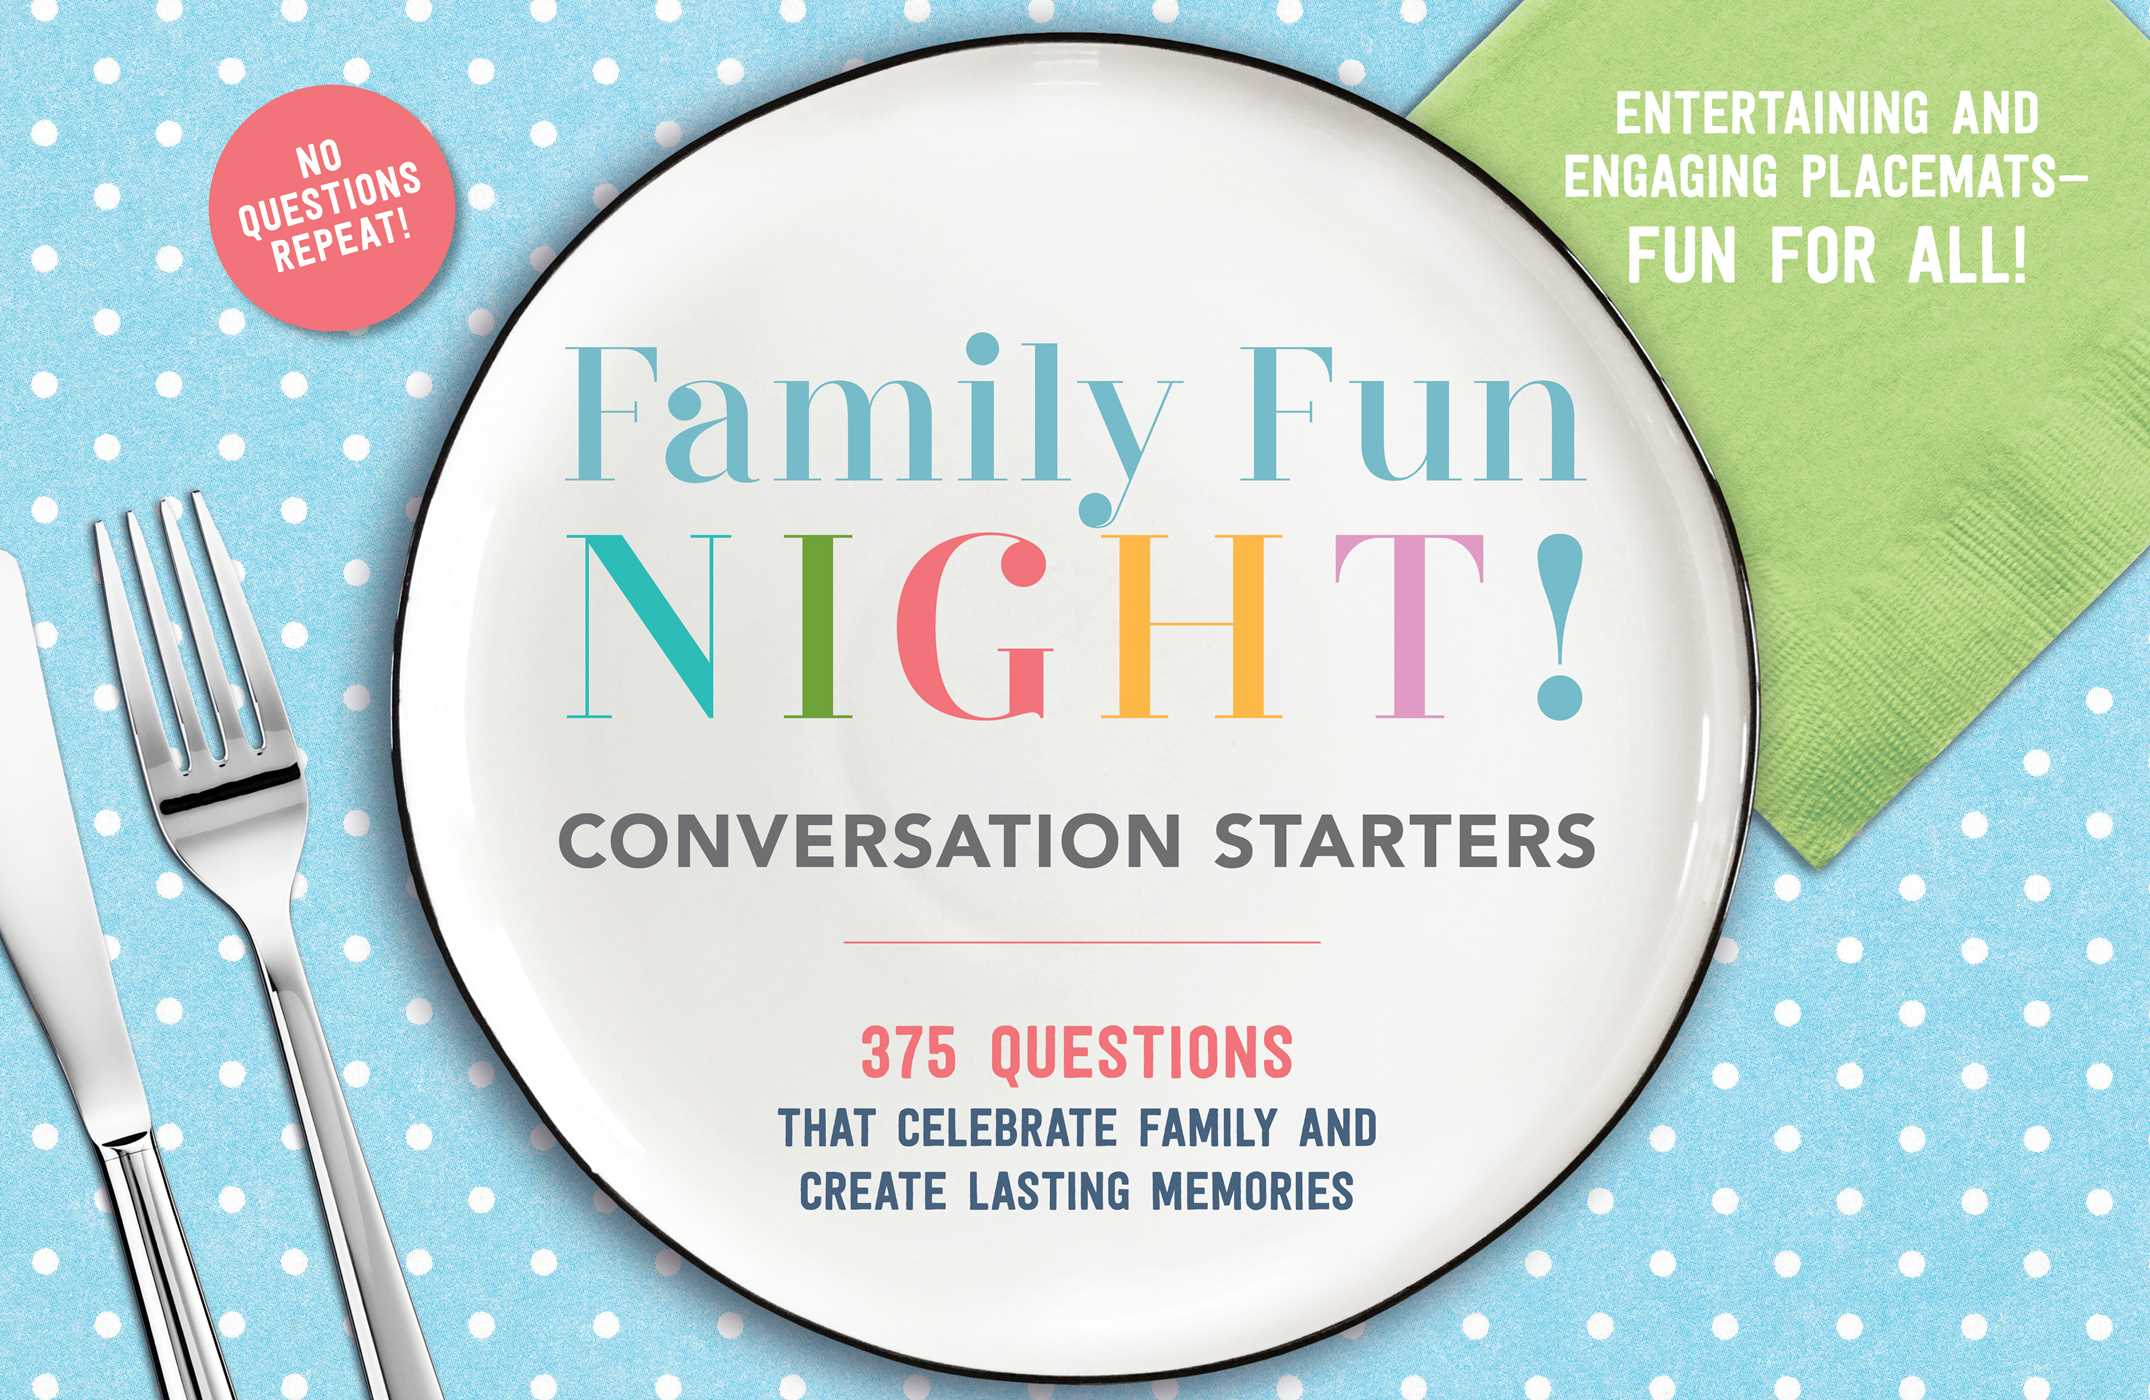 Family fun night conversation starters placemats 9781604337983 hr